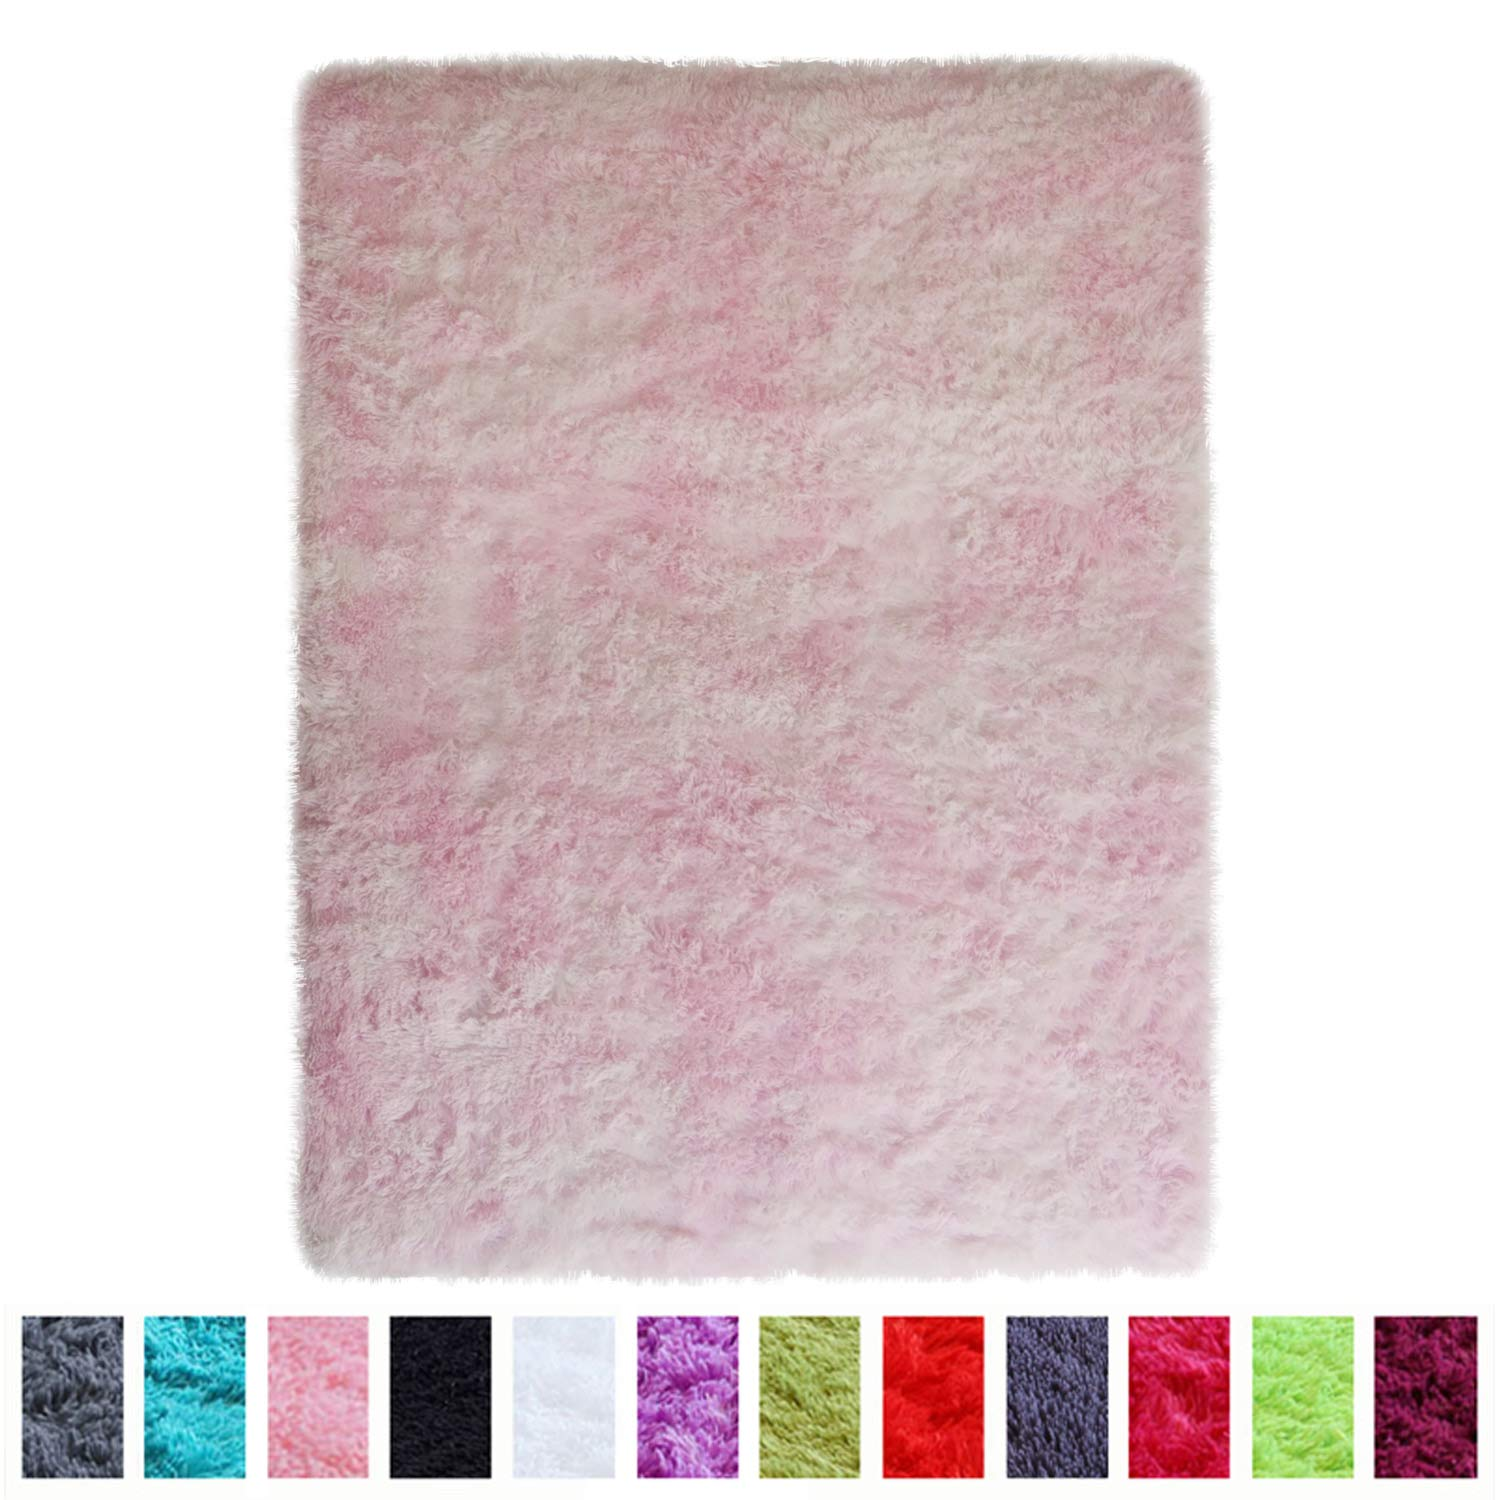 PAGISOFE Shaggy Colored Fluffy Area Rugs Carpets for Baby Nursery Teens Girls Rooms 4x5.3 Feet Plush Fuzzy Patterned Shag Rugs for Kids Bedrooms Home Room Floor Accent Decor Fur Rug (Pink and White)